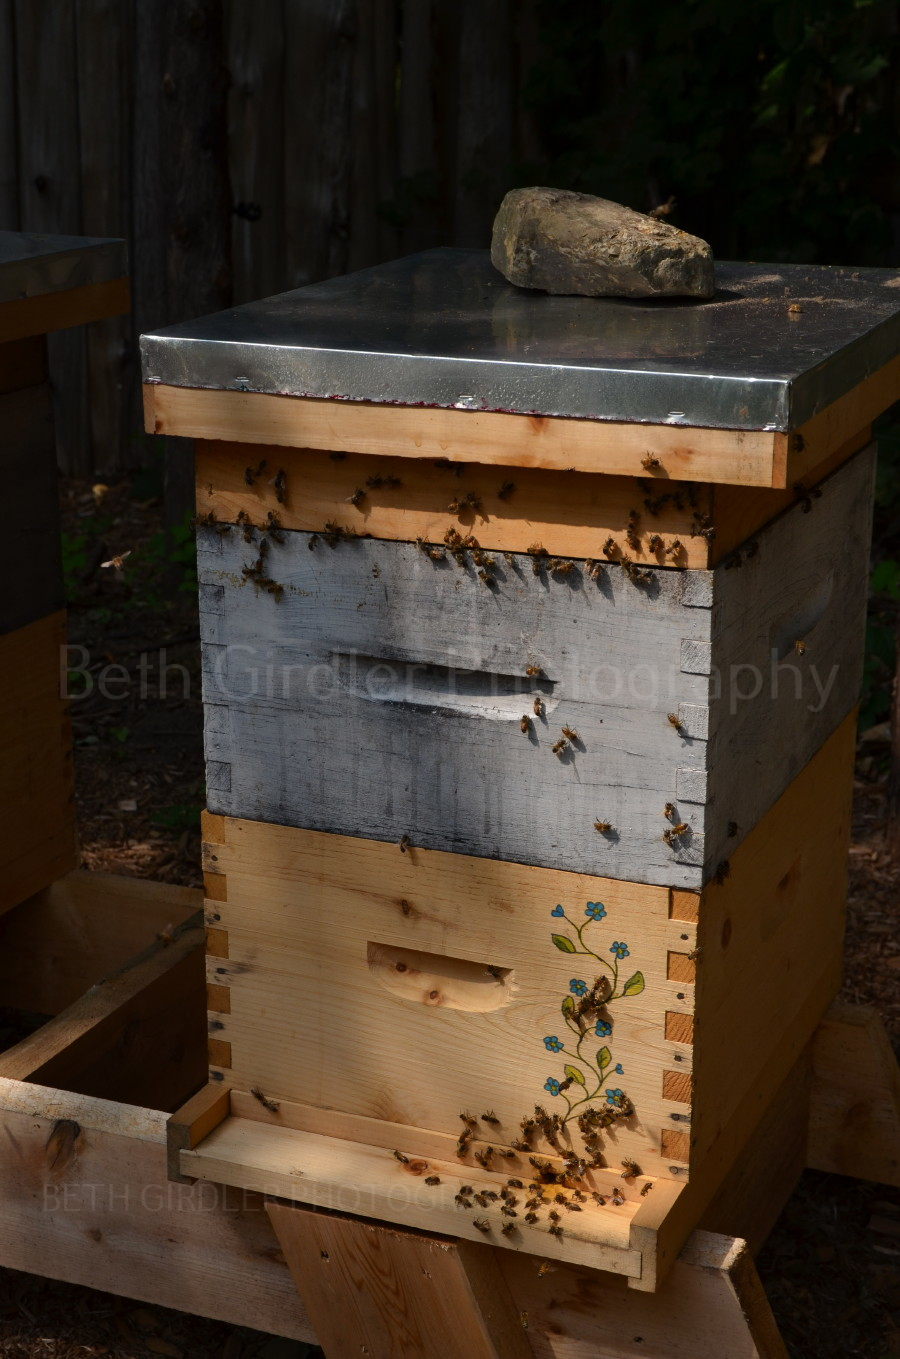 artwork on bee hive